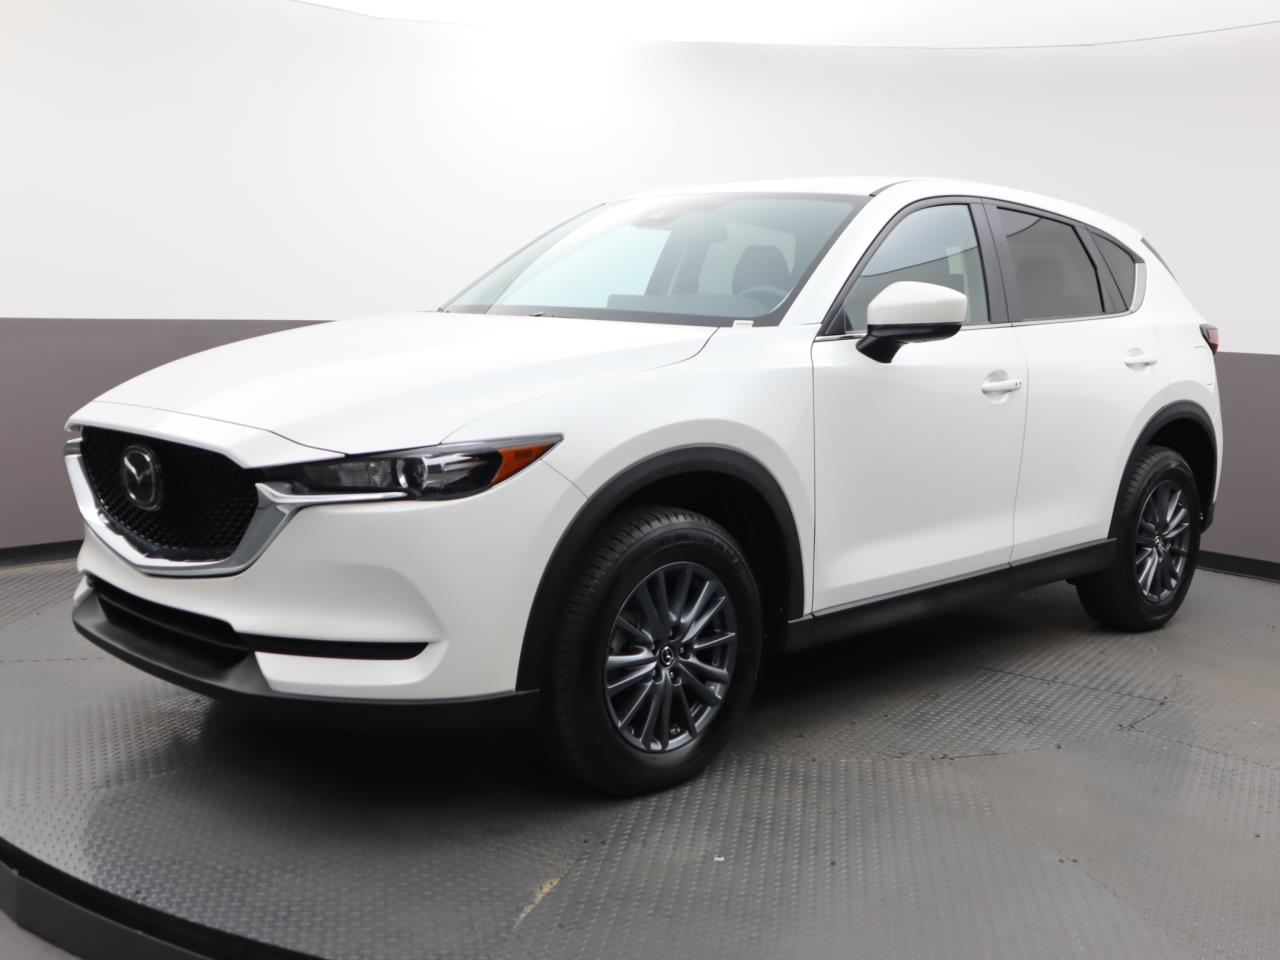 Used MAZDA CX-5 2020 MARGATE TOURING